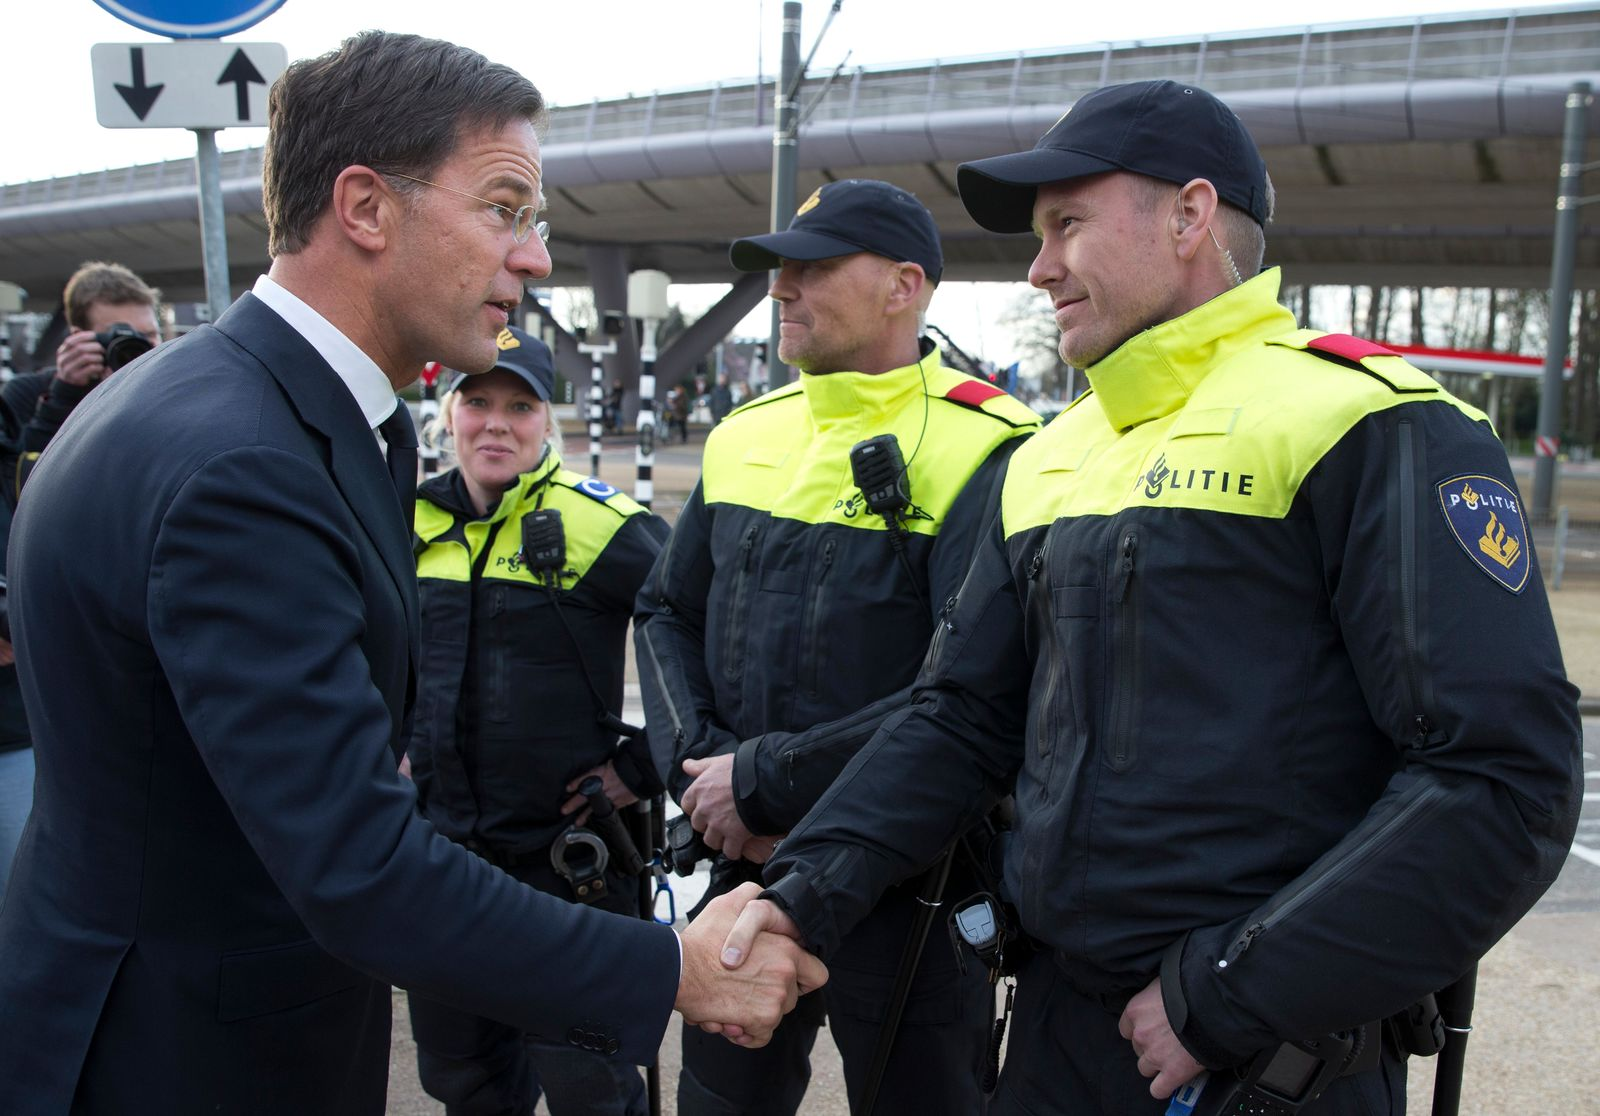 Dutch Prime Minister Mark Rutte expresses his gratitude to Dutch police officers after laying flowers at a makeshift memorial for victims of a shooting incident in a tram in Utrecht, Netherlands, Tuesday, March 19, 2019. A gunman killed three people and wounded others on a tram in the central Dutch city of Utrecht Monday March 18, 2019. (AP Photo/Peter Dejong)